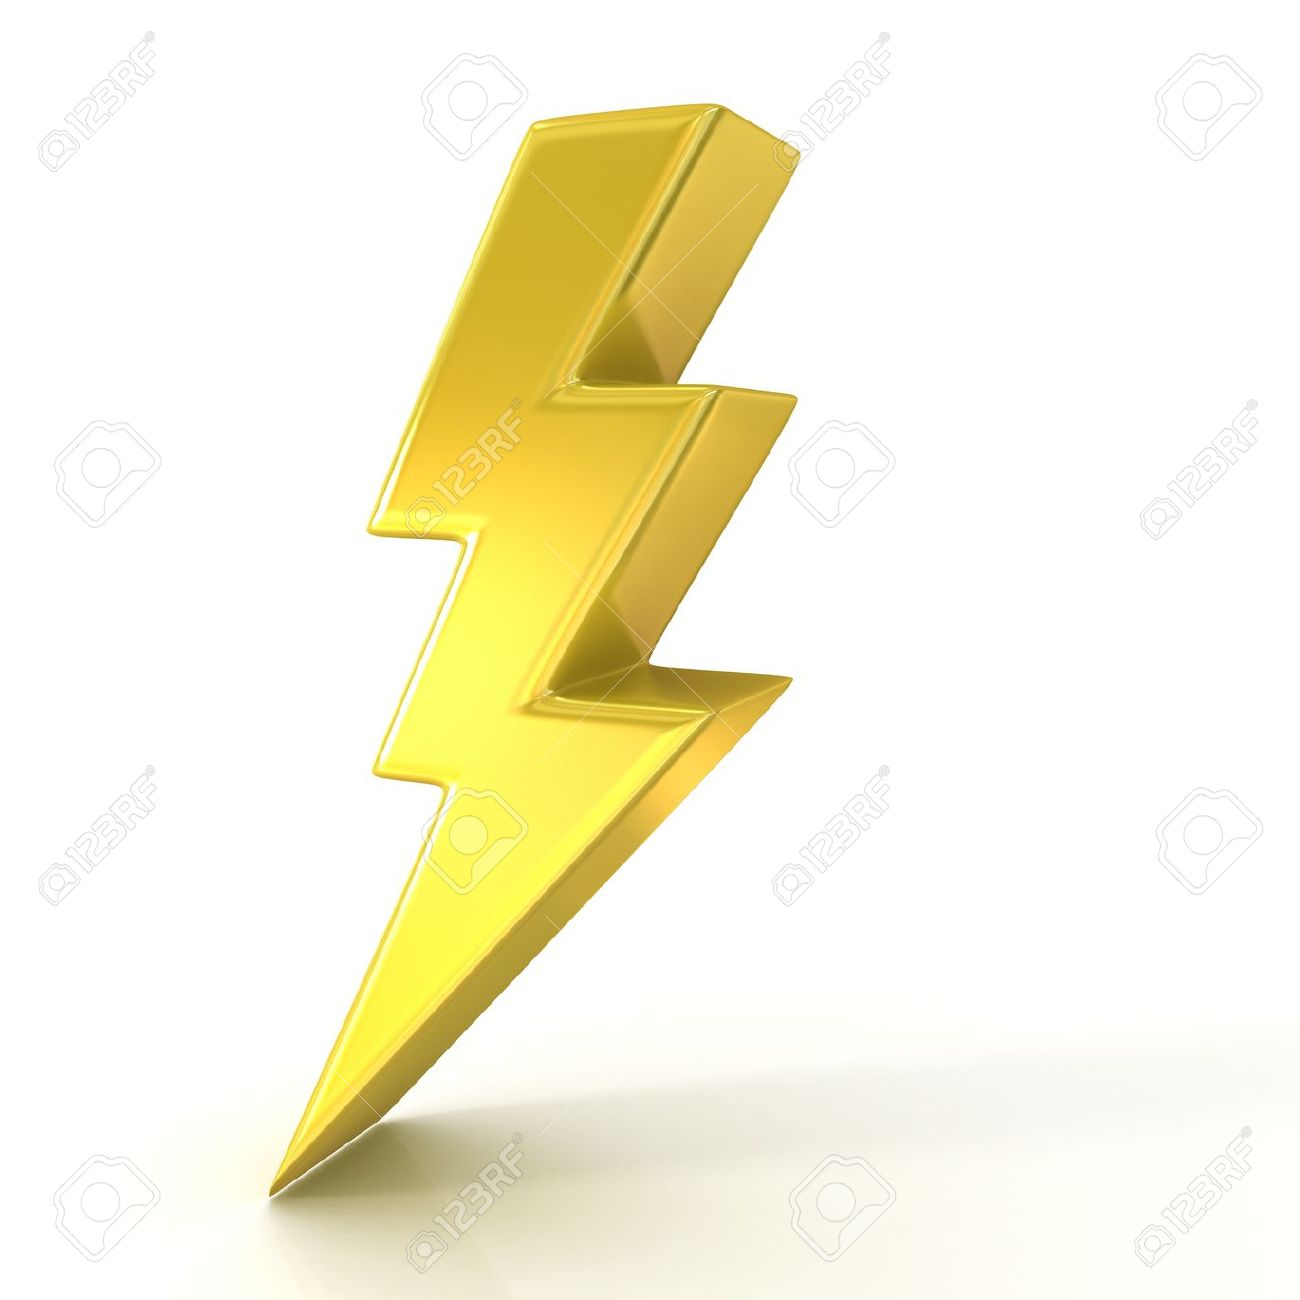 1300x1300 Lightning Bolt Images Amp Stock Pictures. Royalty Free Lightning